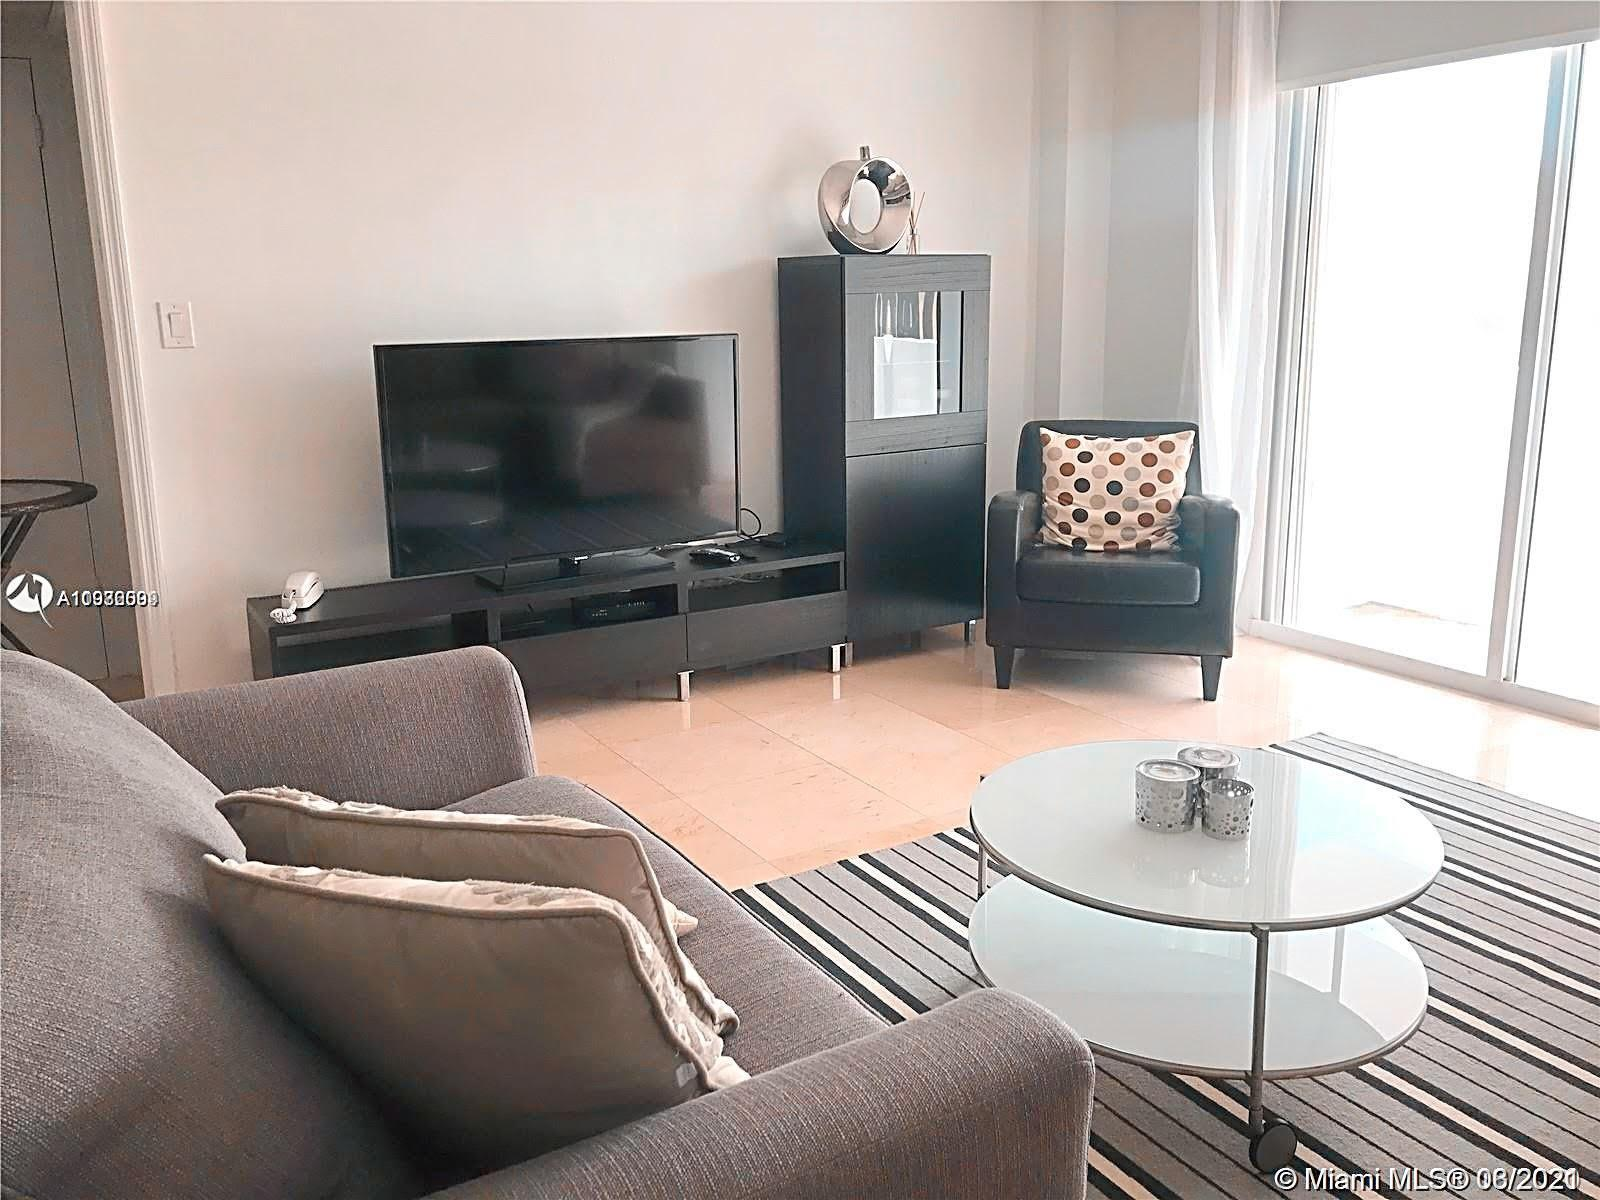 GREAT INVESTMENT OPPORTUNITY! 1BEDROOM 1 BATHROOM UNIT WITH DIRECT OCEAN VIEW. JUST MINUTES FROM BAL